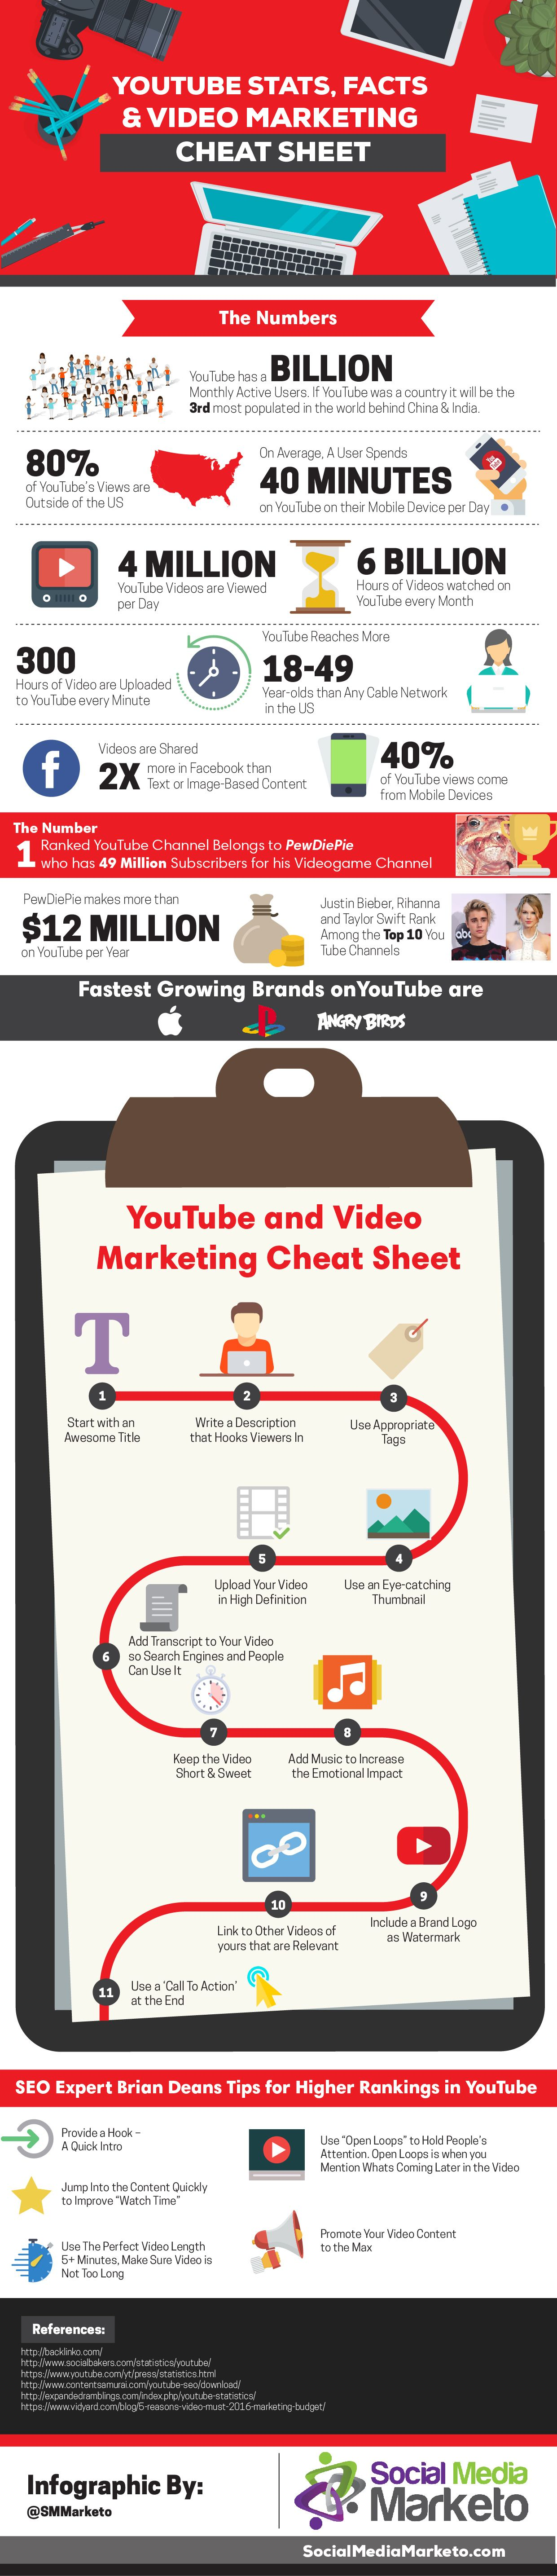 YouTube Stats, Facts & Video Marketing Cheat Sheet #Infographic